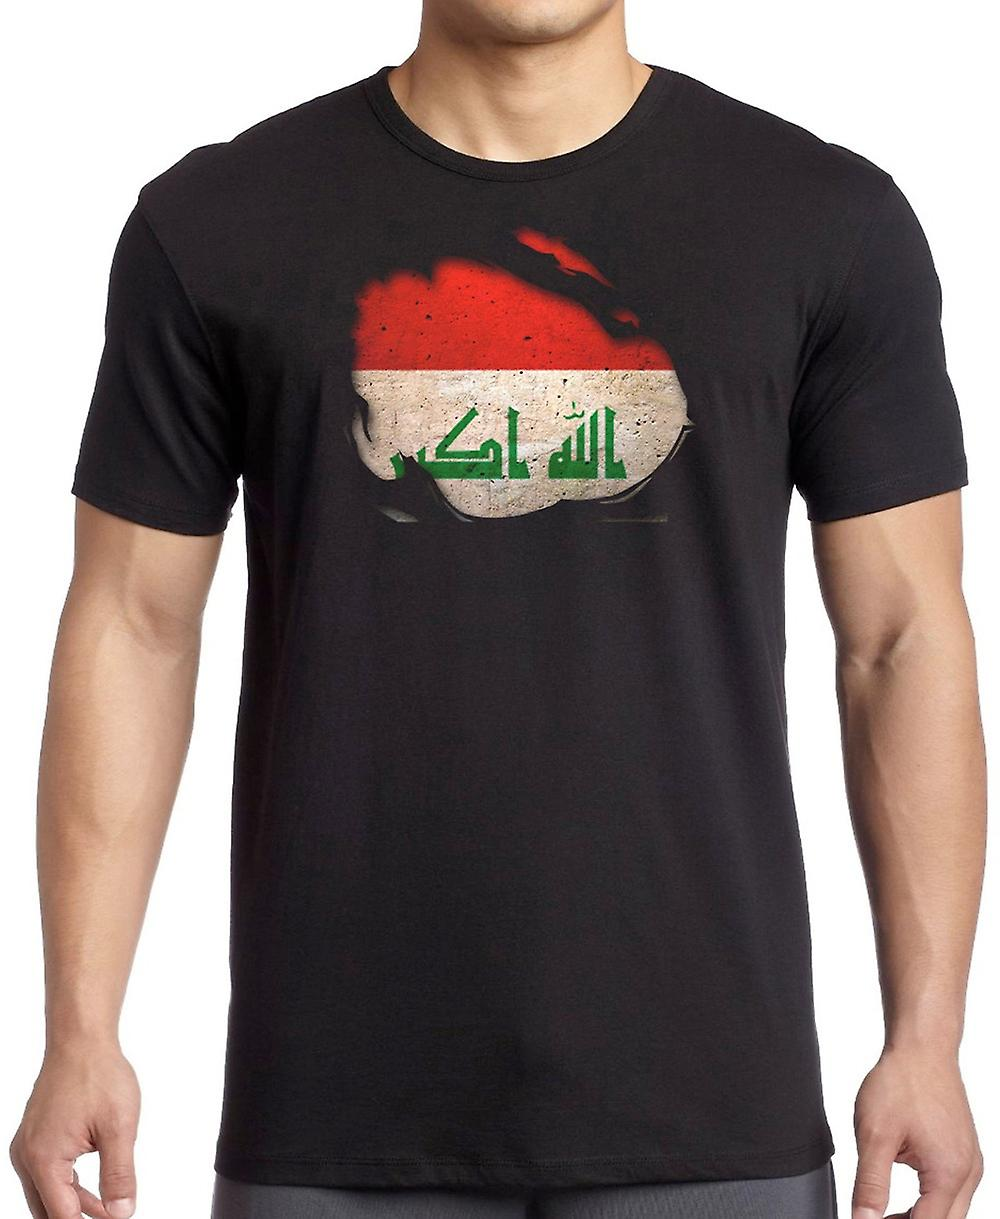 Iraqi Iraq Ripped Effect Under Shirt T Shirt